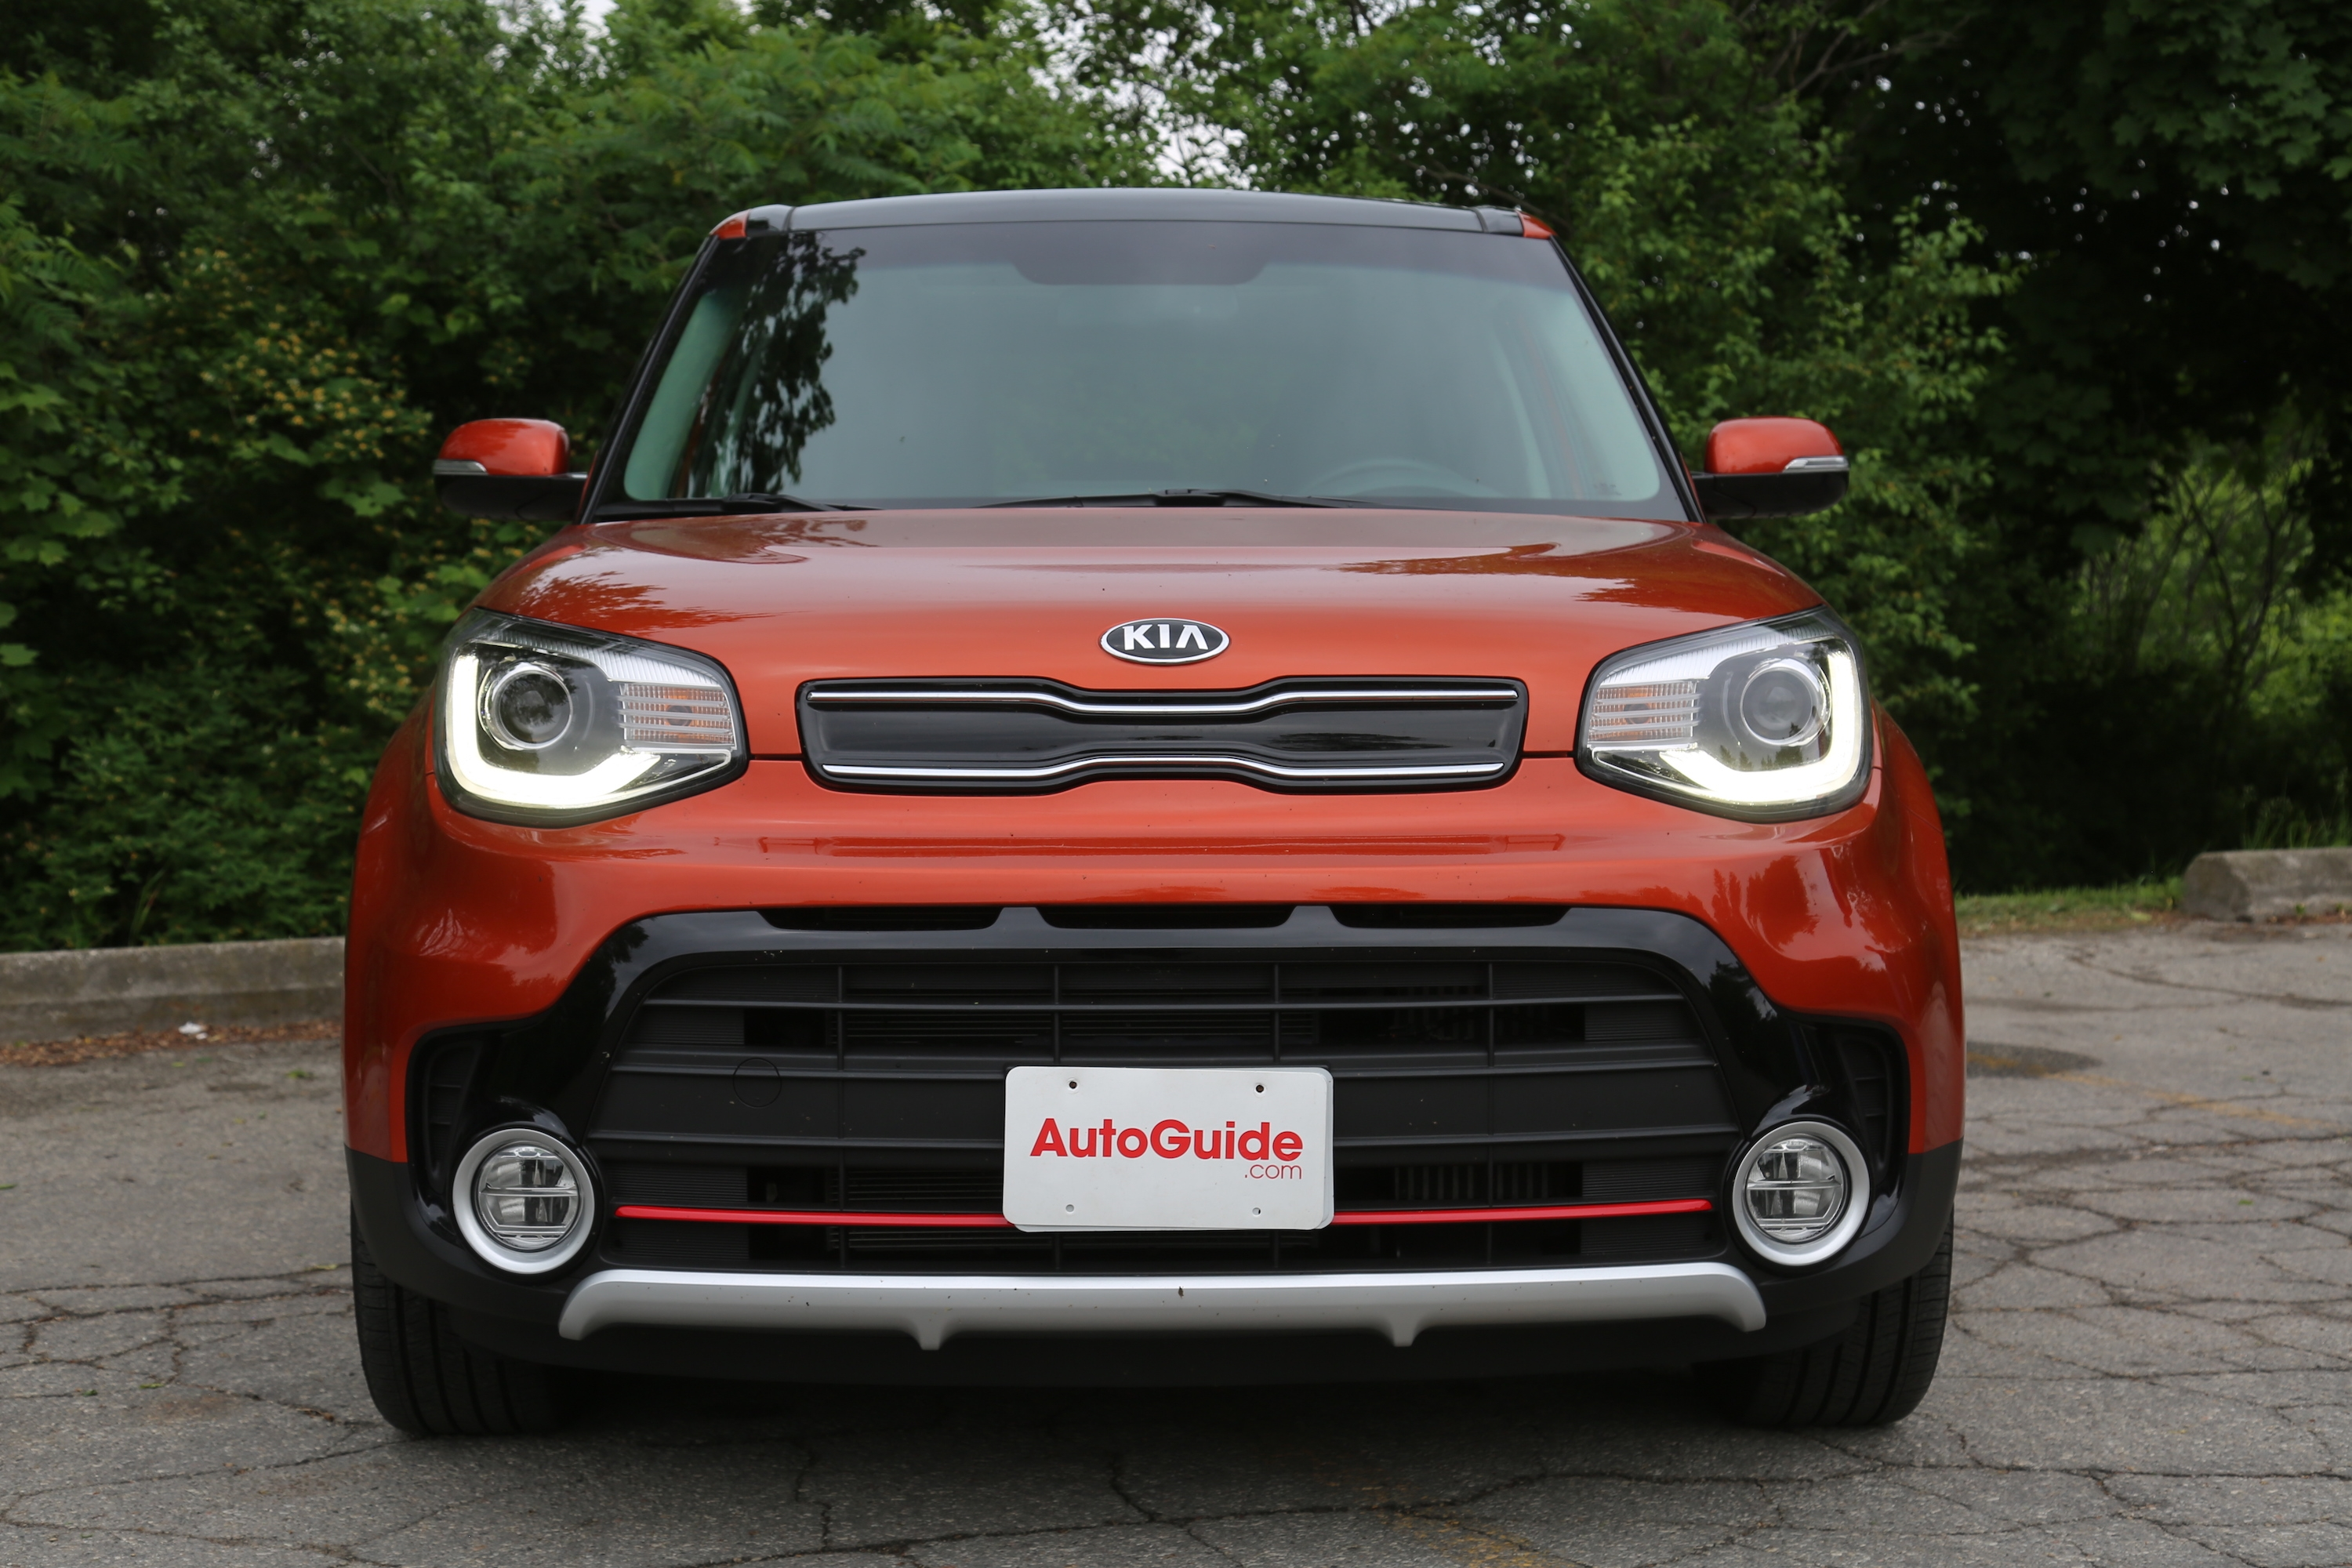 2018 kia soul 5 things it nails and 5 things it needs to improve. Black Bedroom Furniture Sets. Home Design Ideas